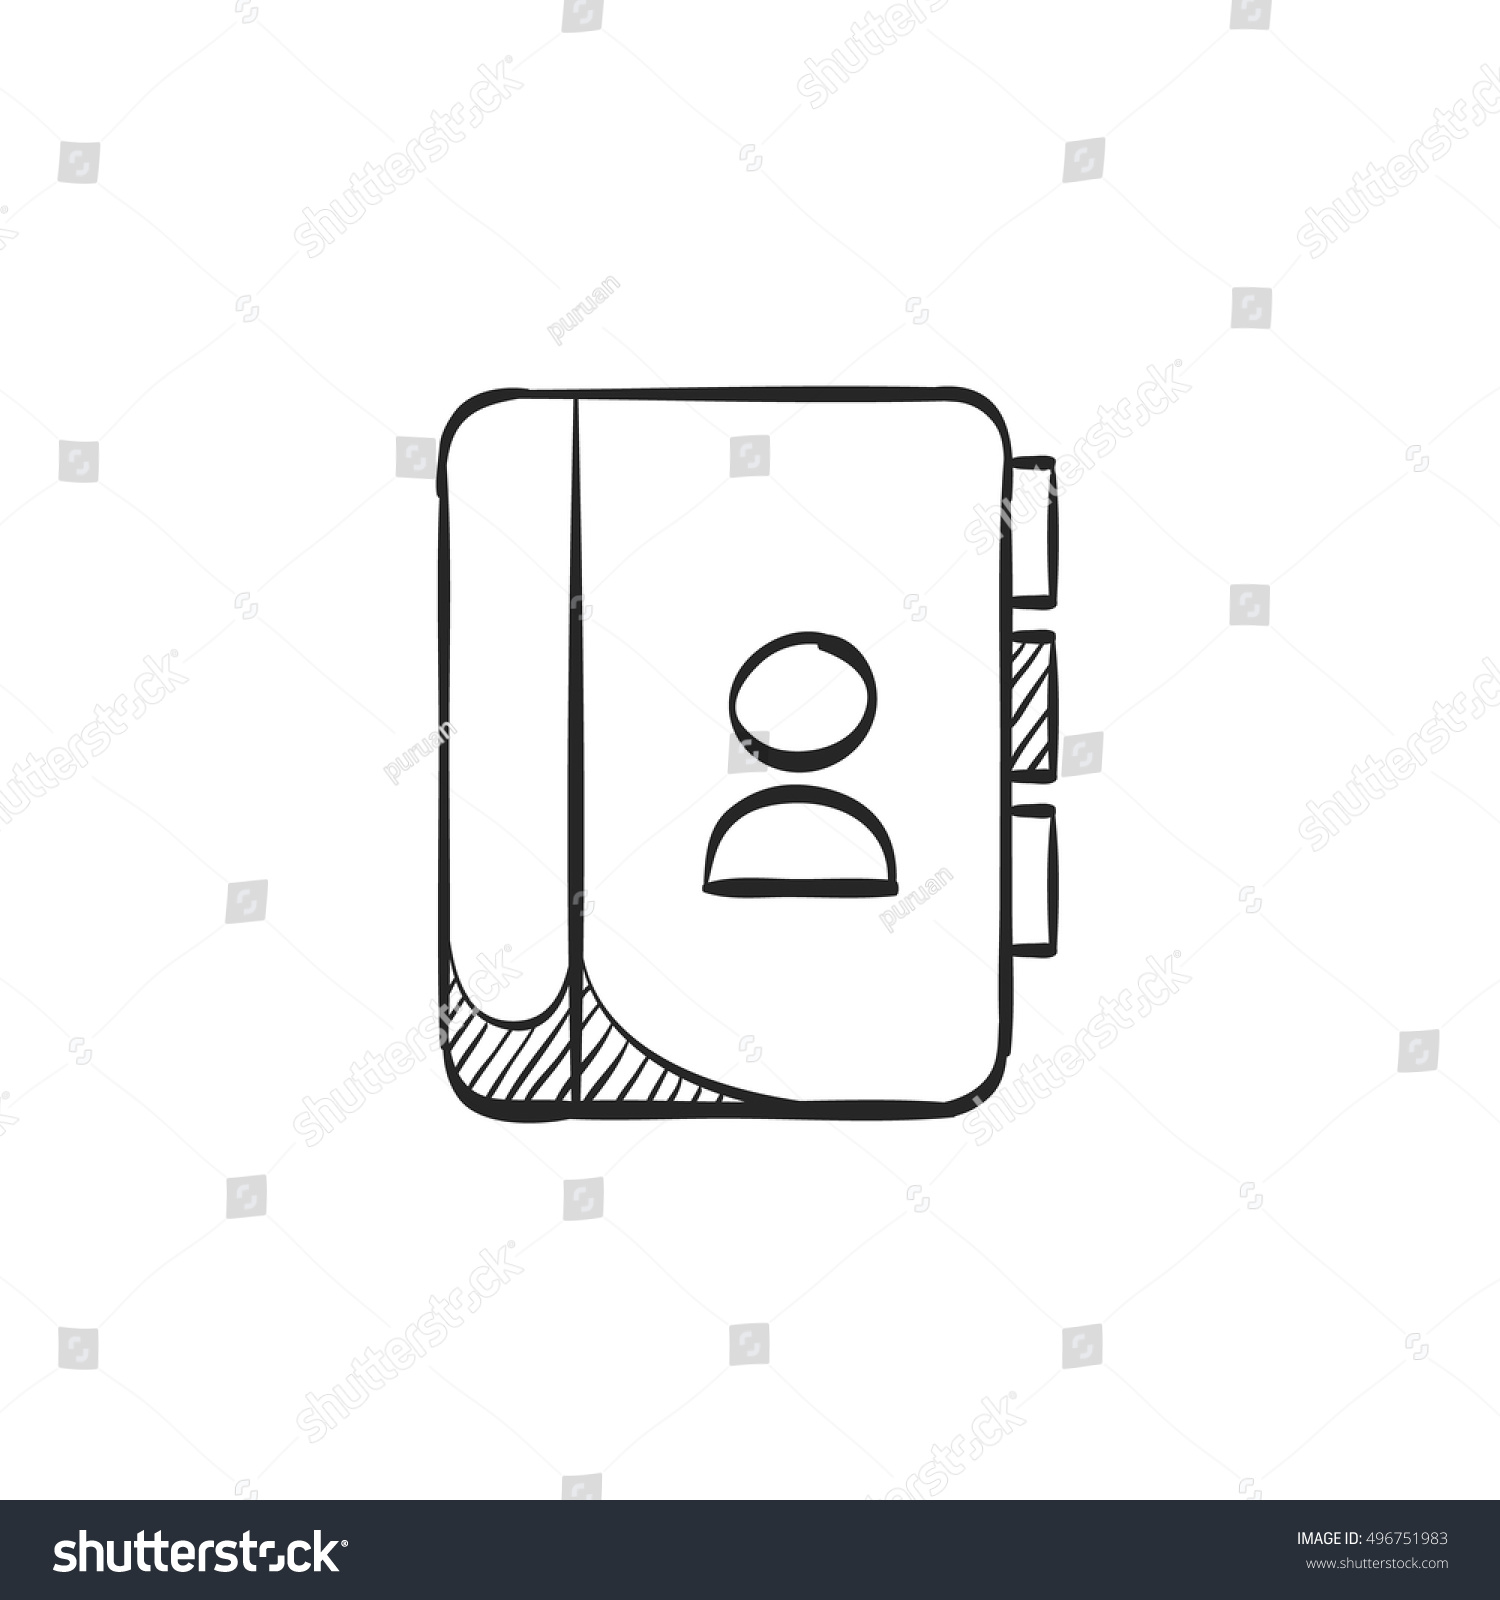 address book icon doodle sketch lines stock vector royalty free